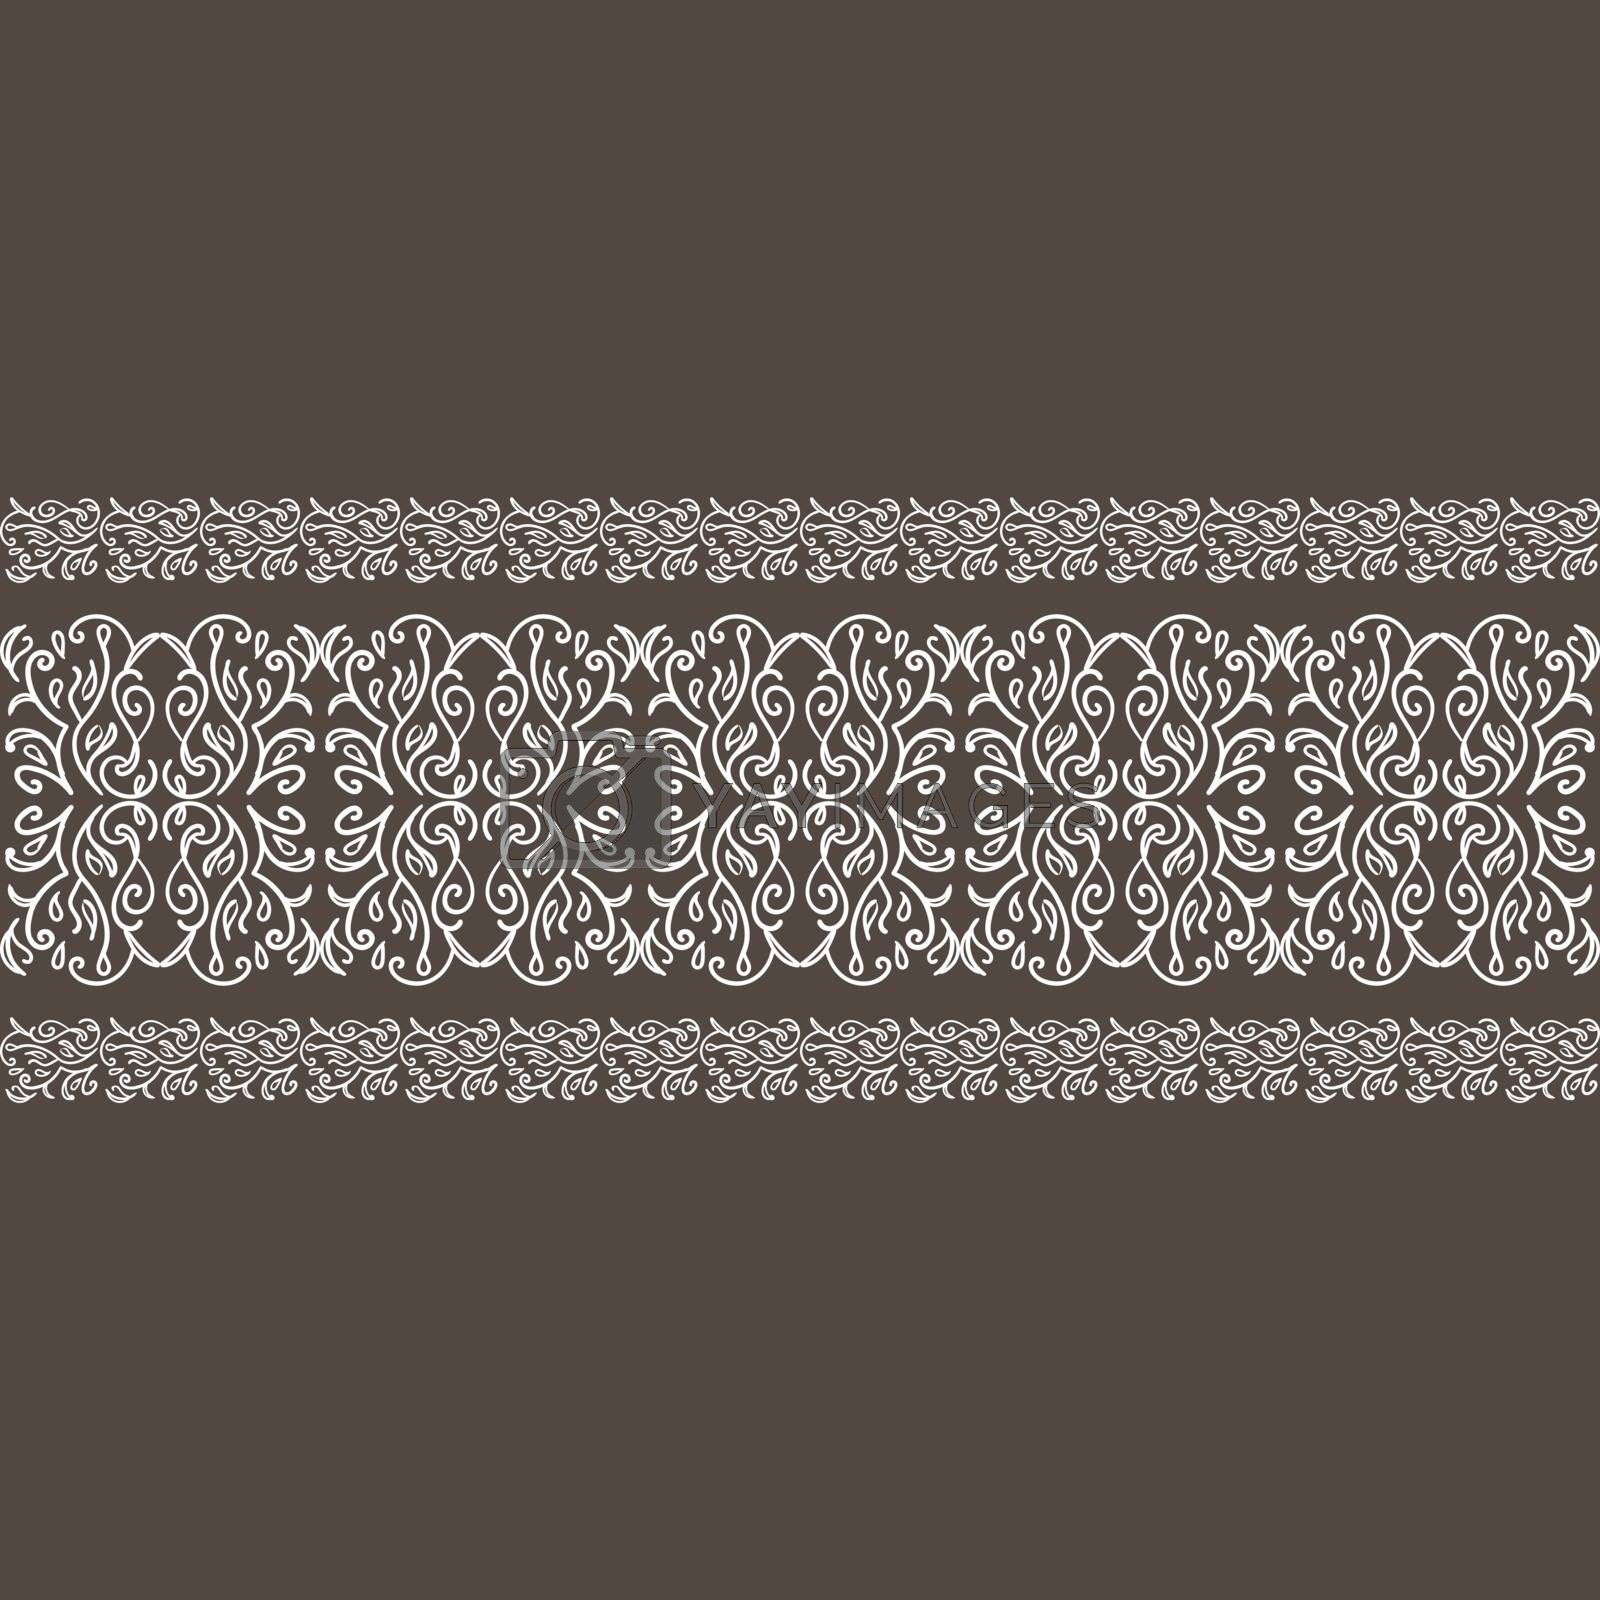 White seamless lace ornament with elegant floral tracery on dark brown background